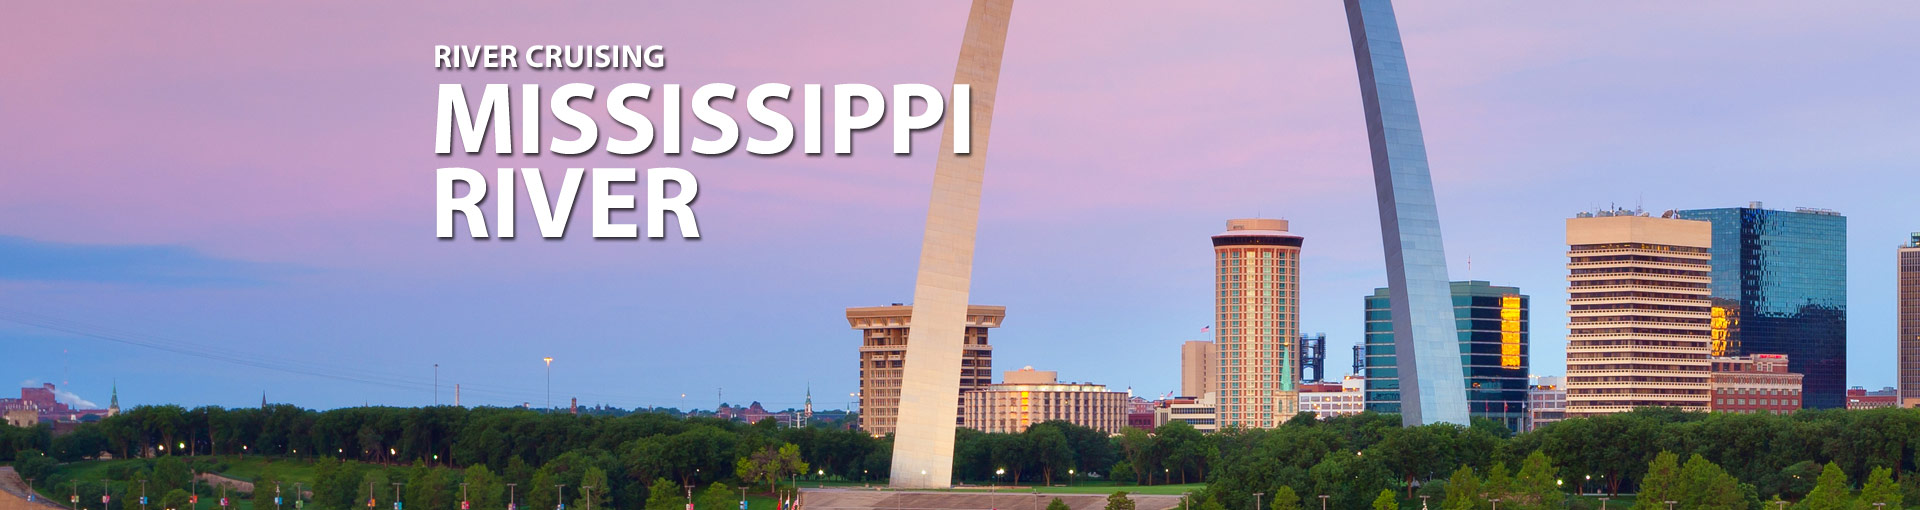 Mississippi River cruises offer a heartland tour